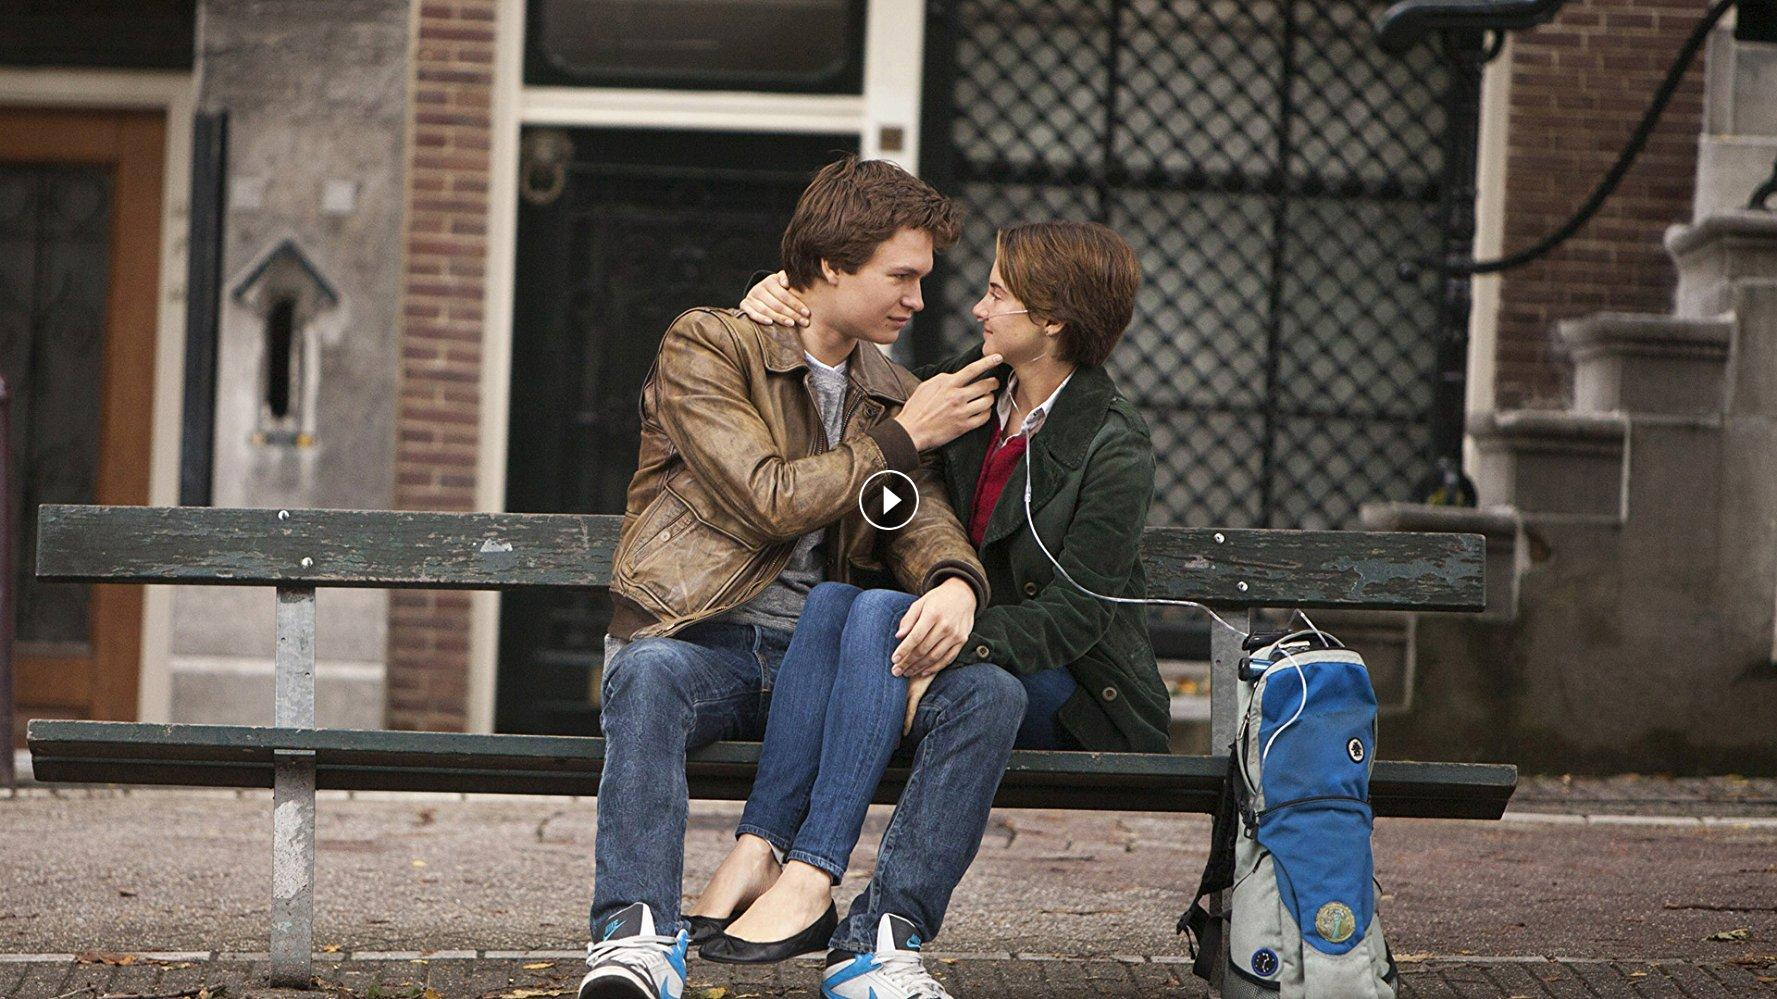 مشاهدة فيلم The Fault In Our Stars 2014 مترجم Hd اون لاين